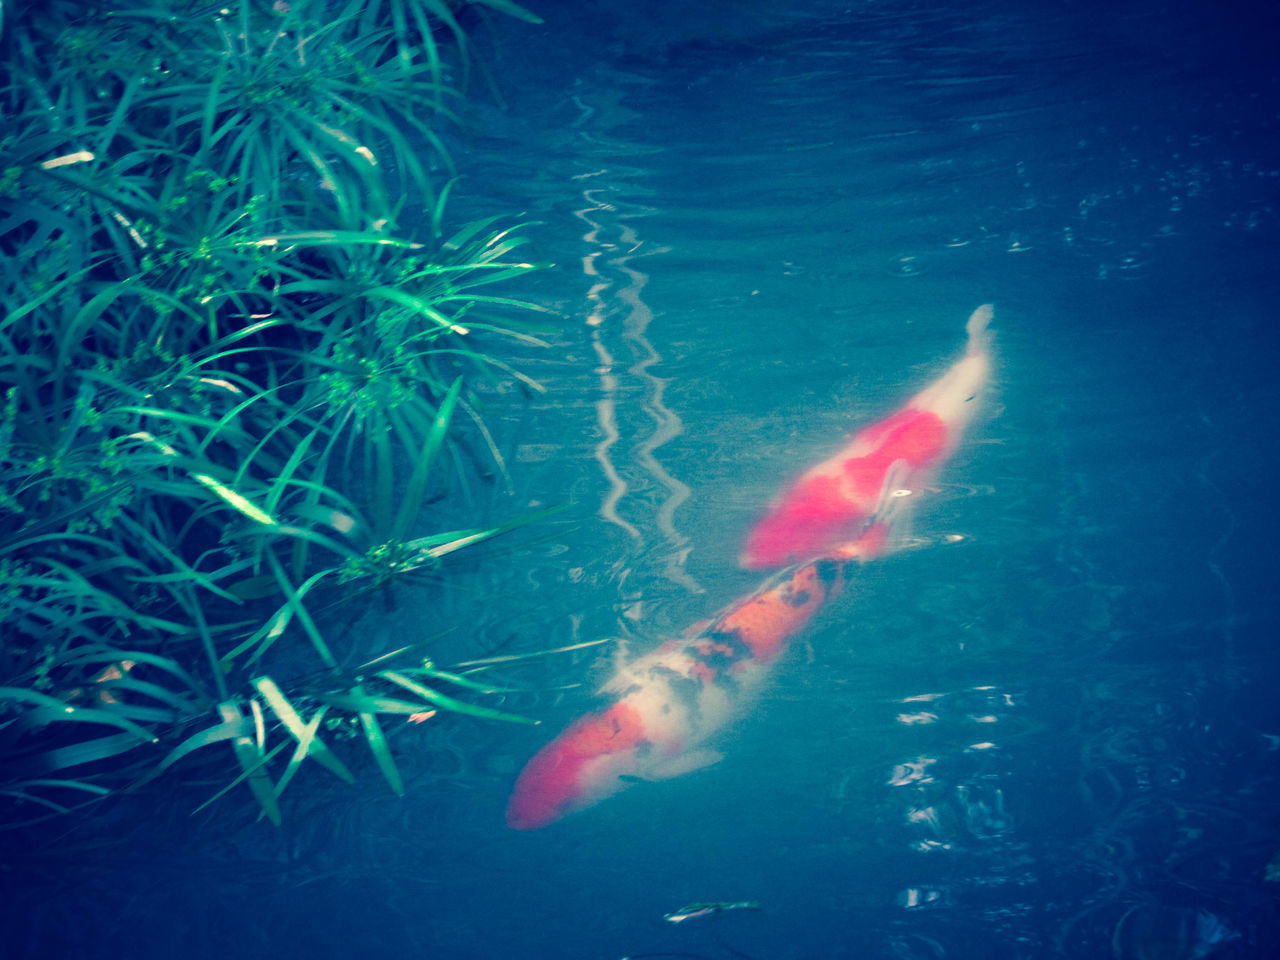 Animal Themes Animals In The Wild Appealing Beautiful Blue Charm Close-up Comfortable Day Emotion Fish Grass Koi Carp Leaf Nature No People Outdoors Play Red Scenery Sea Life Selective Focus Swimming Travel Water